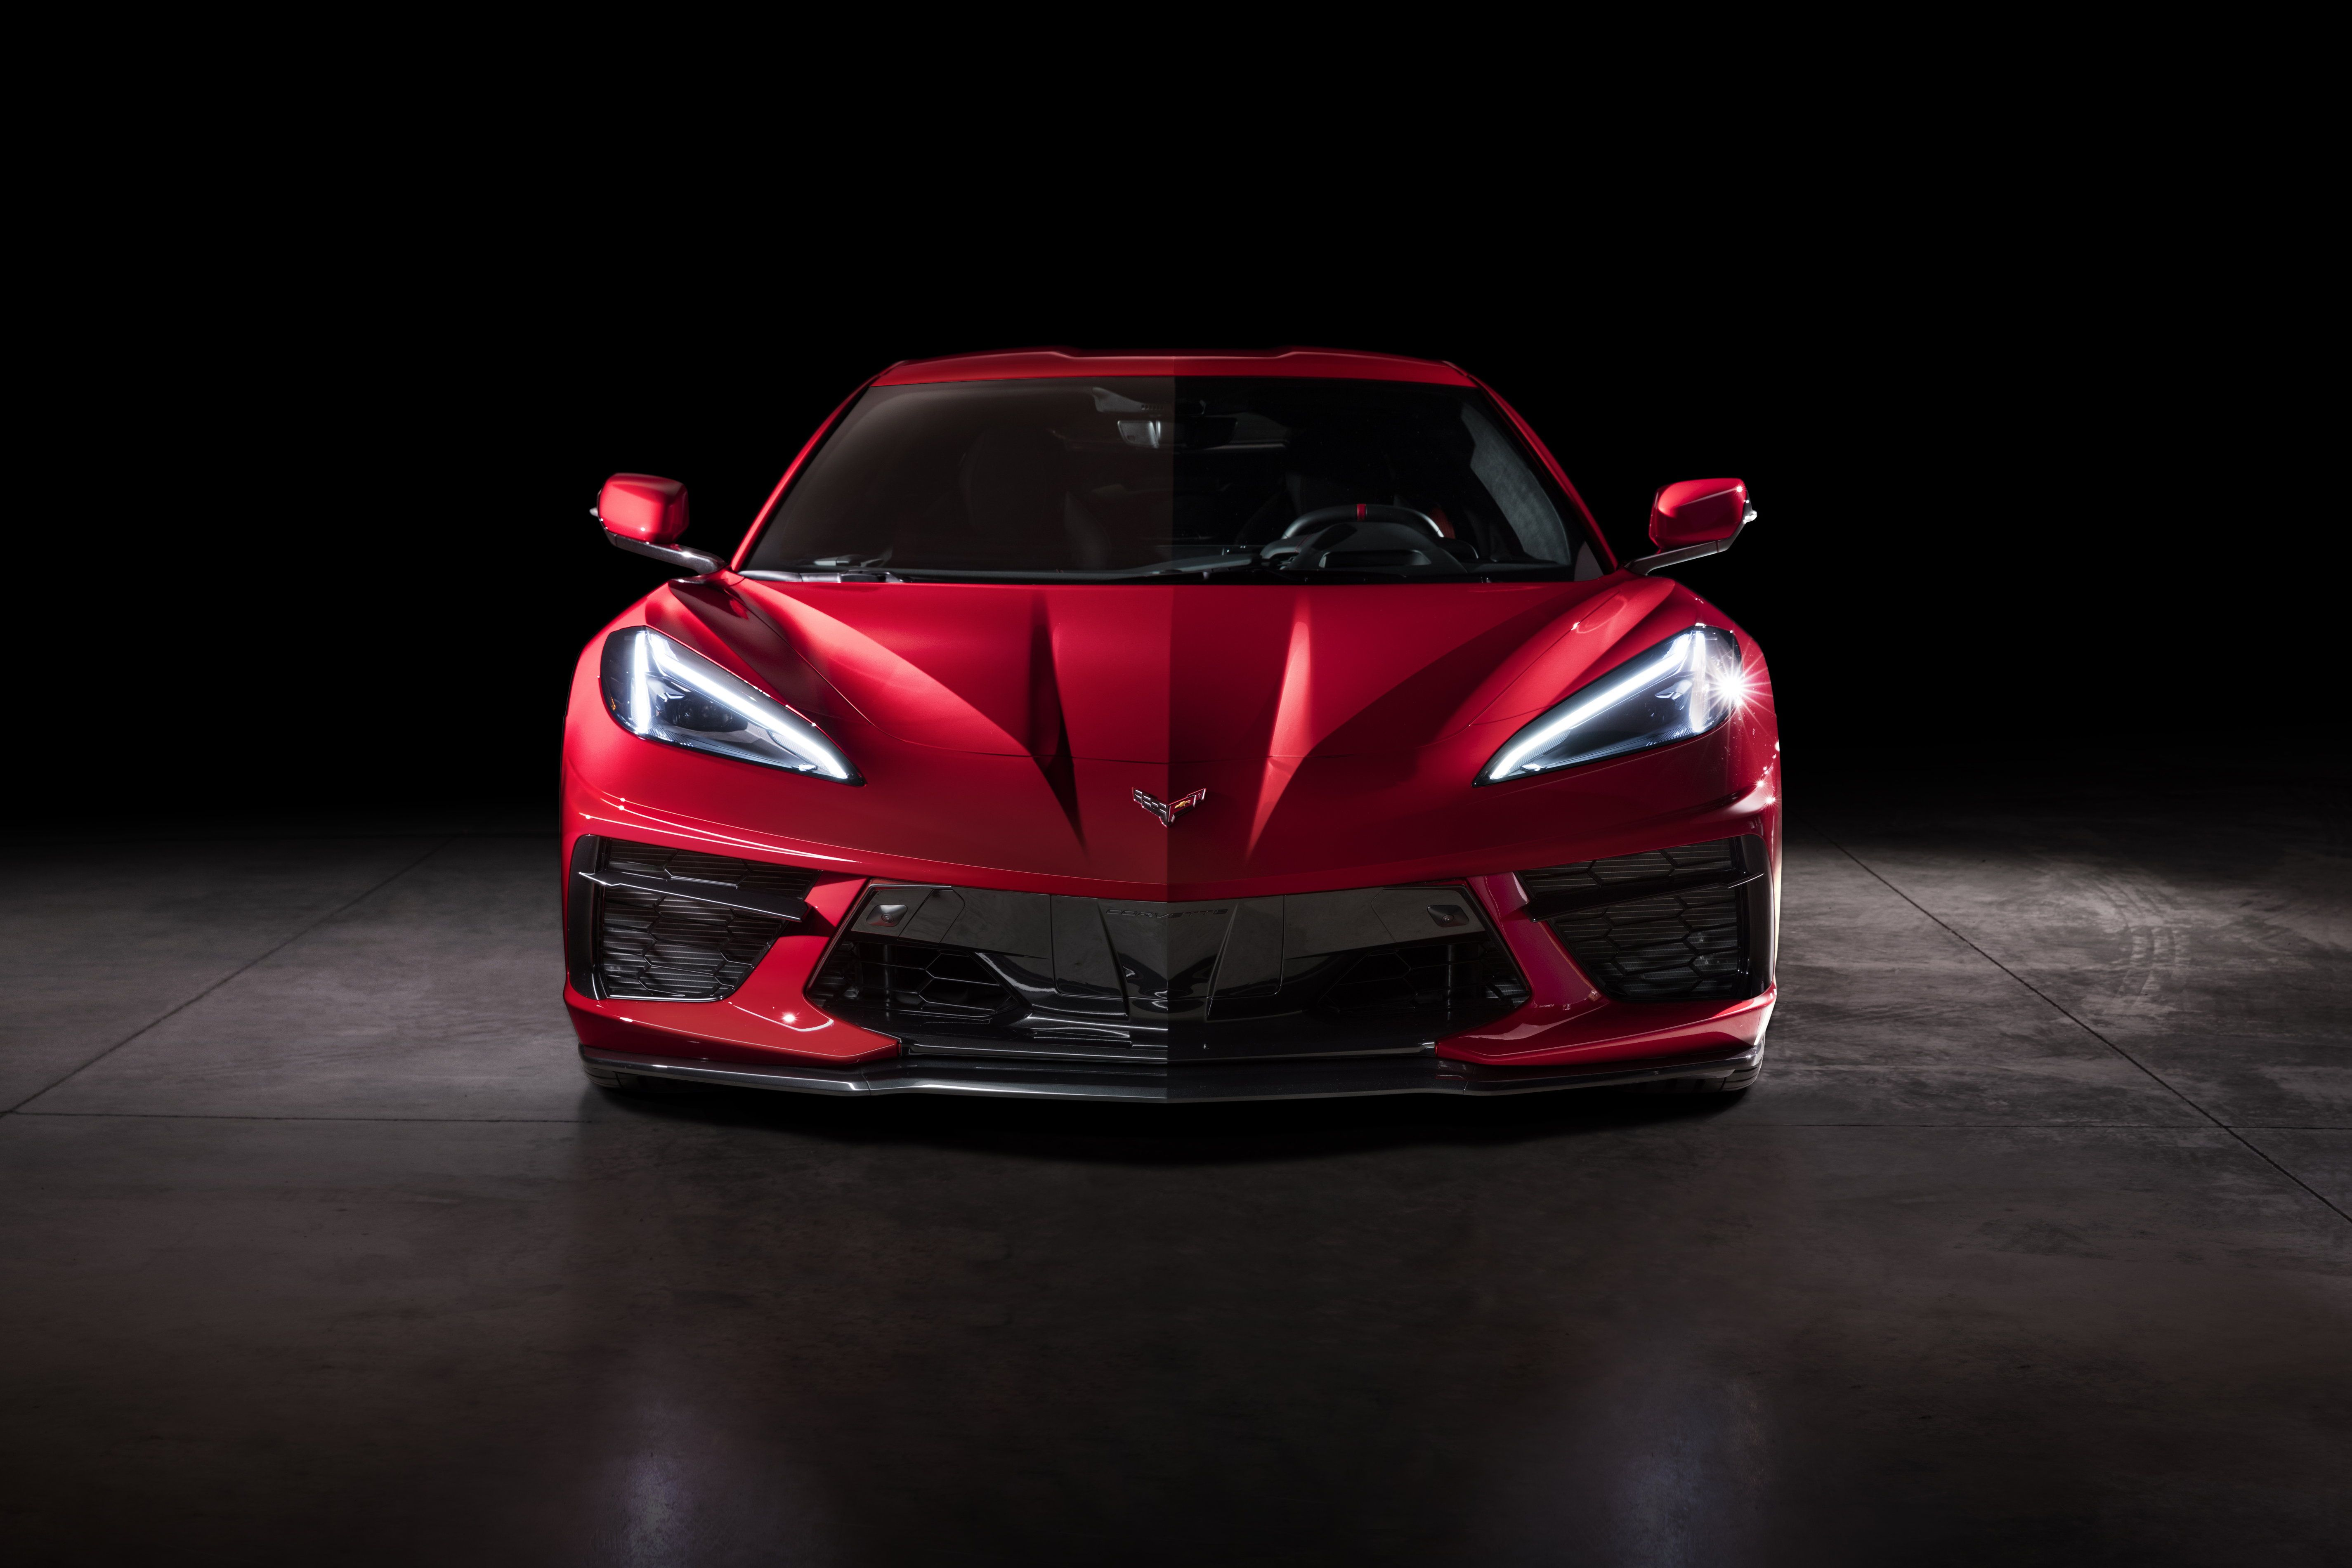 Book Your 2020 C8 Corvette Asap Because Chevrolet Is Going To Hike The Prices For The Next Model Year Top Speed Chevrolet Corvette Stingray Chevrolet Corvette Corvette Stingray